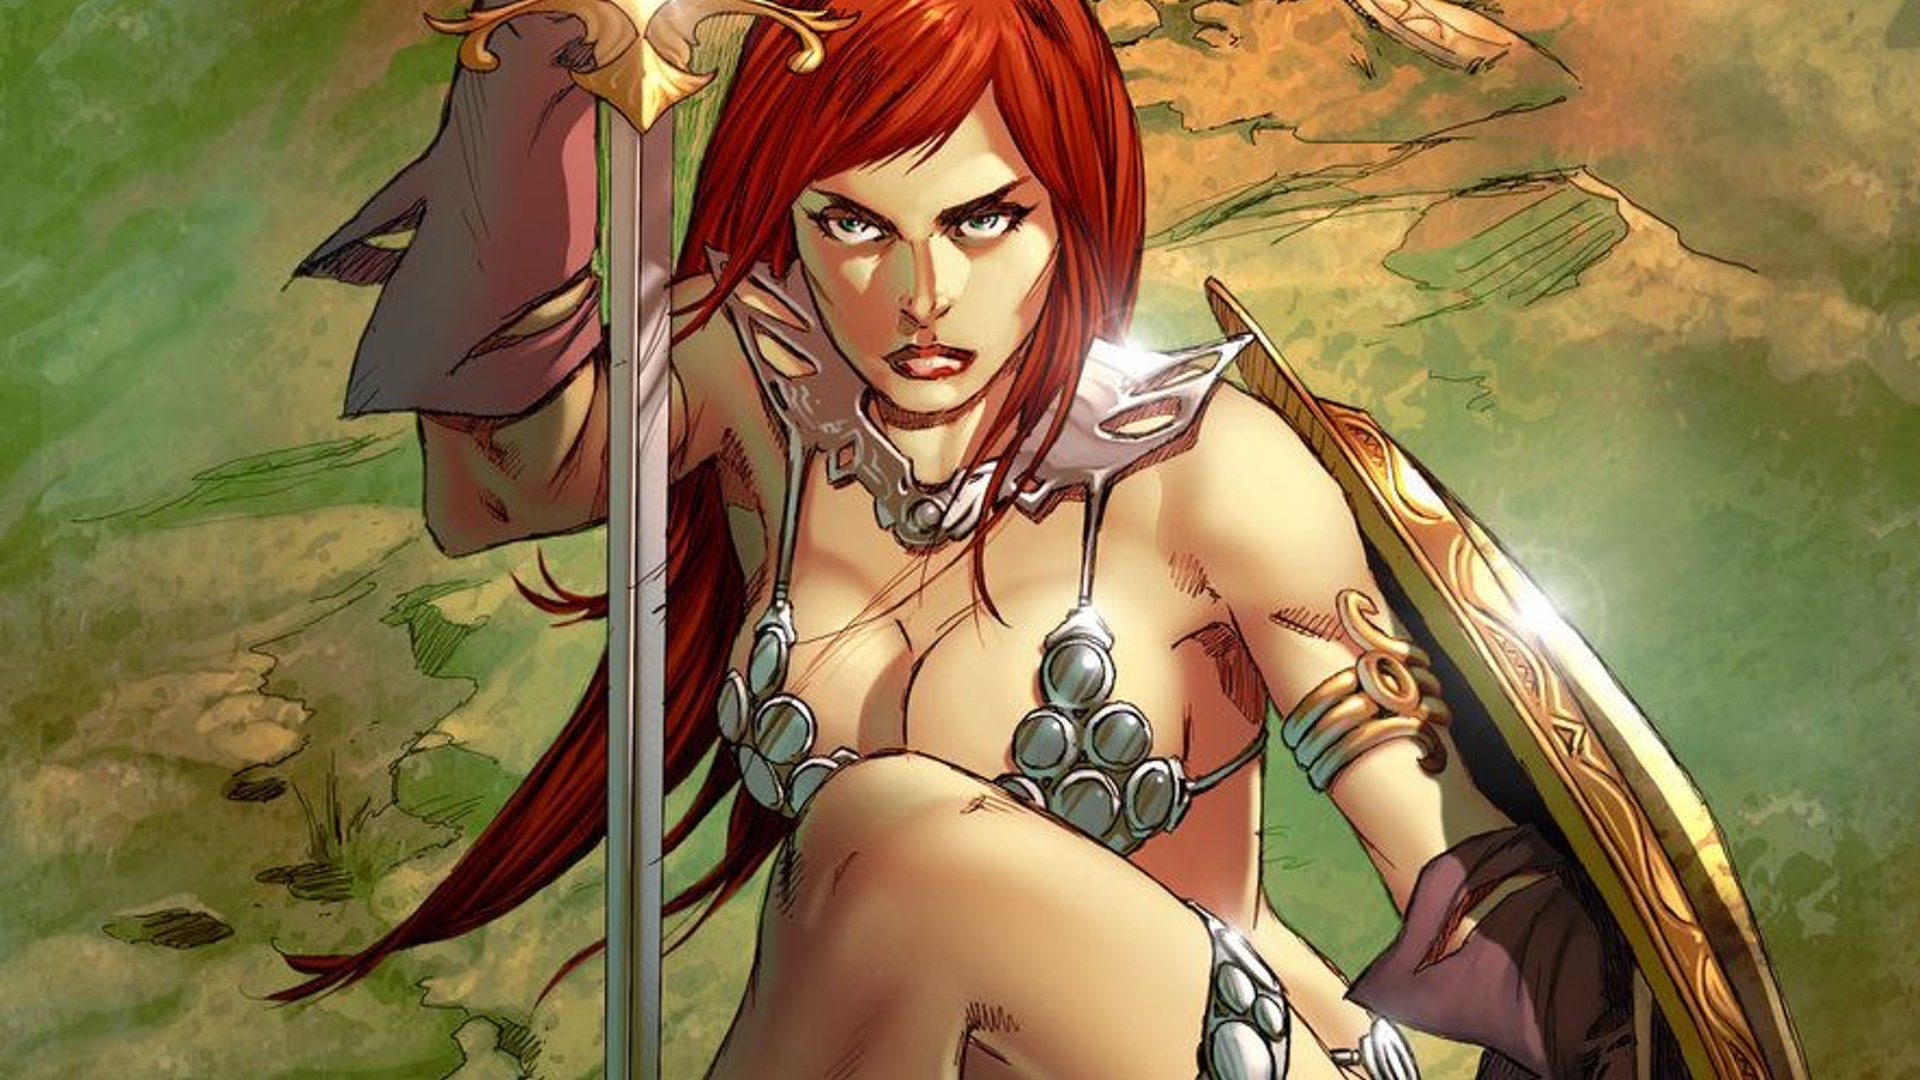 bryan-singer-is-still-attached-to-direct-red-sonja-regardless-of-the-the-latest-allegations-made-against-him-social.jpg